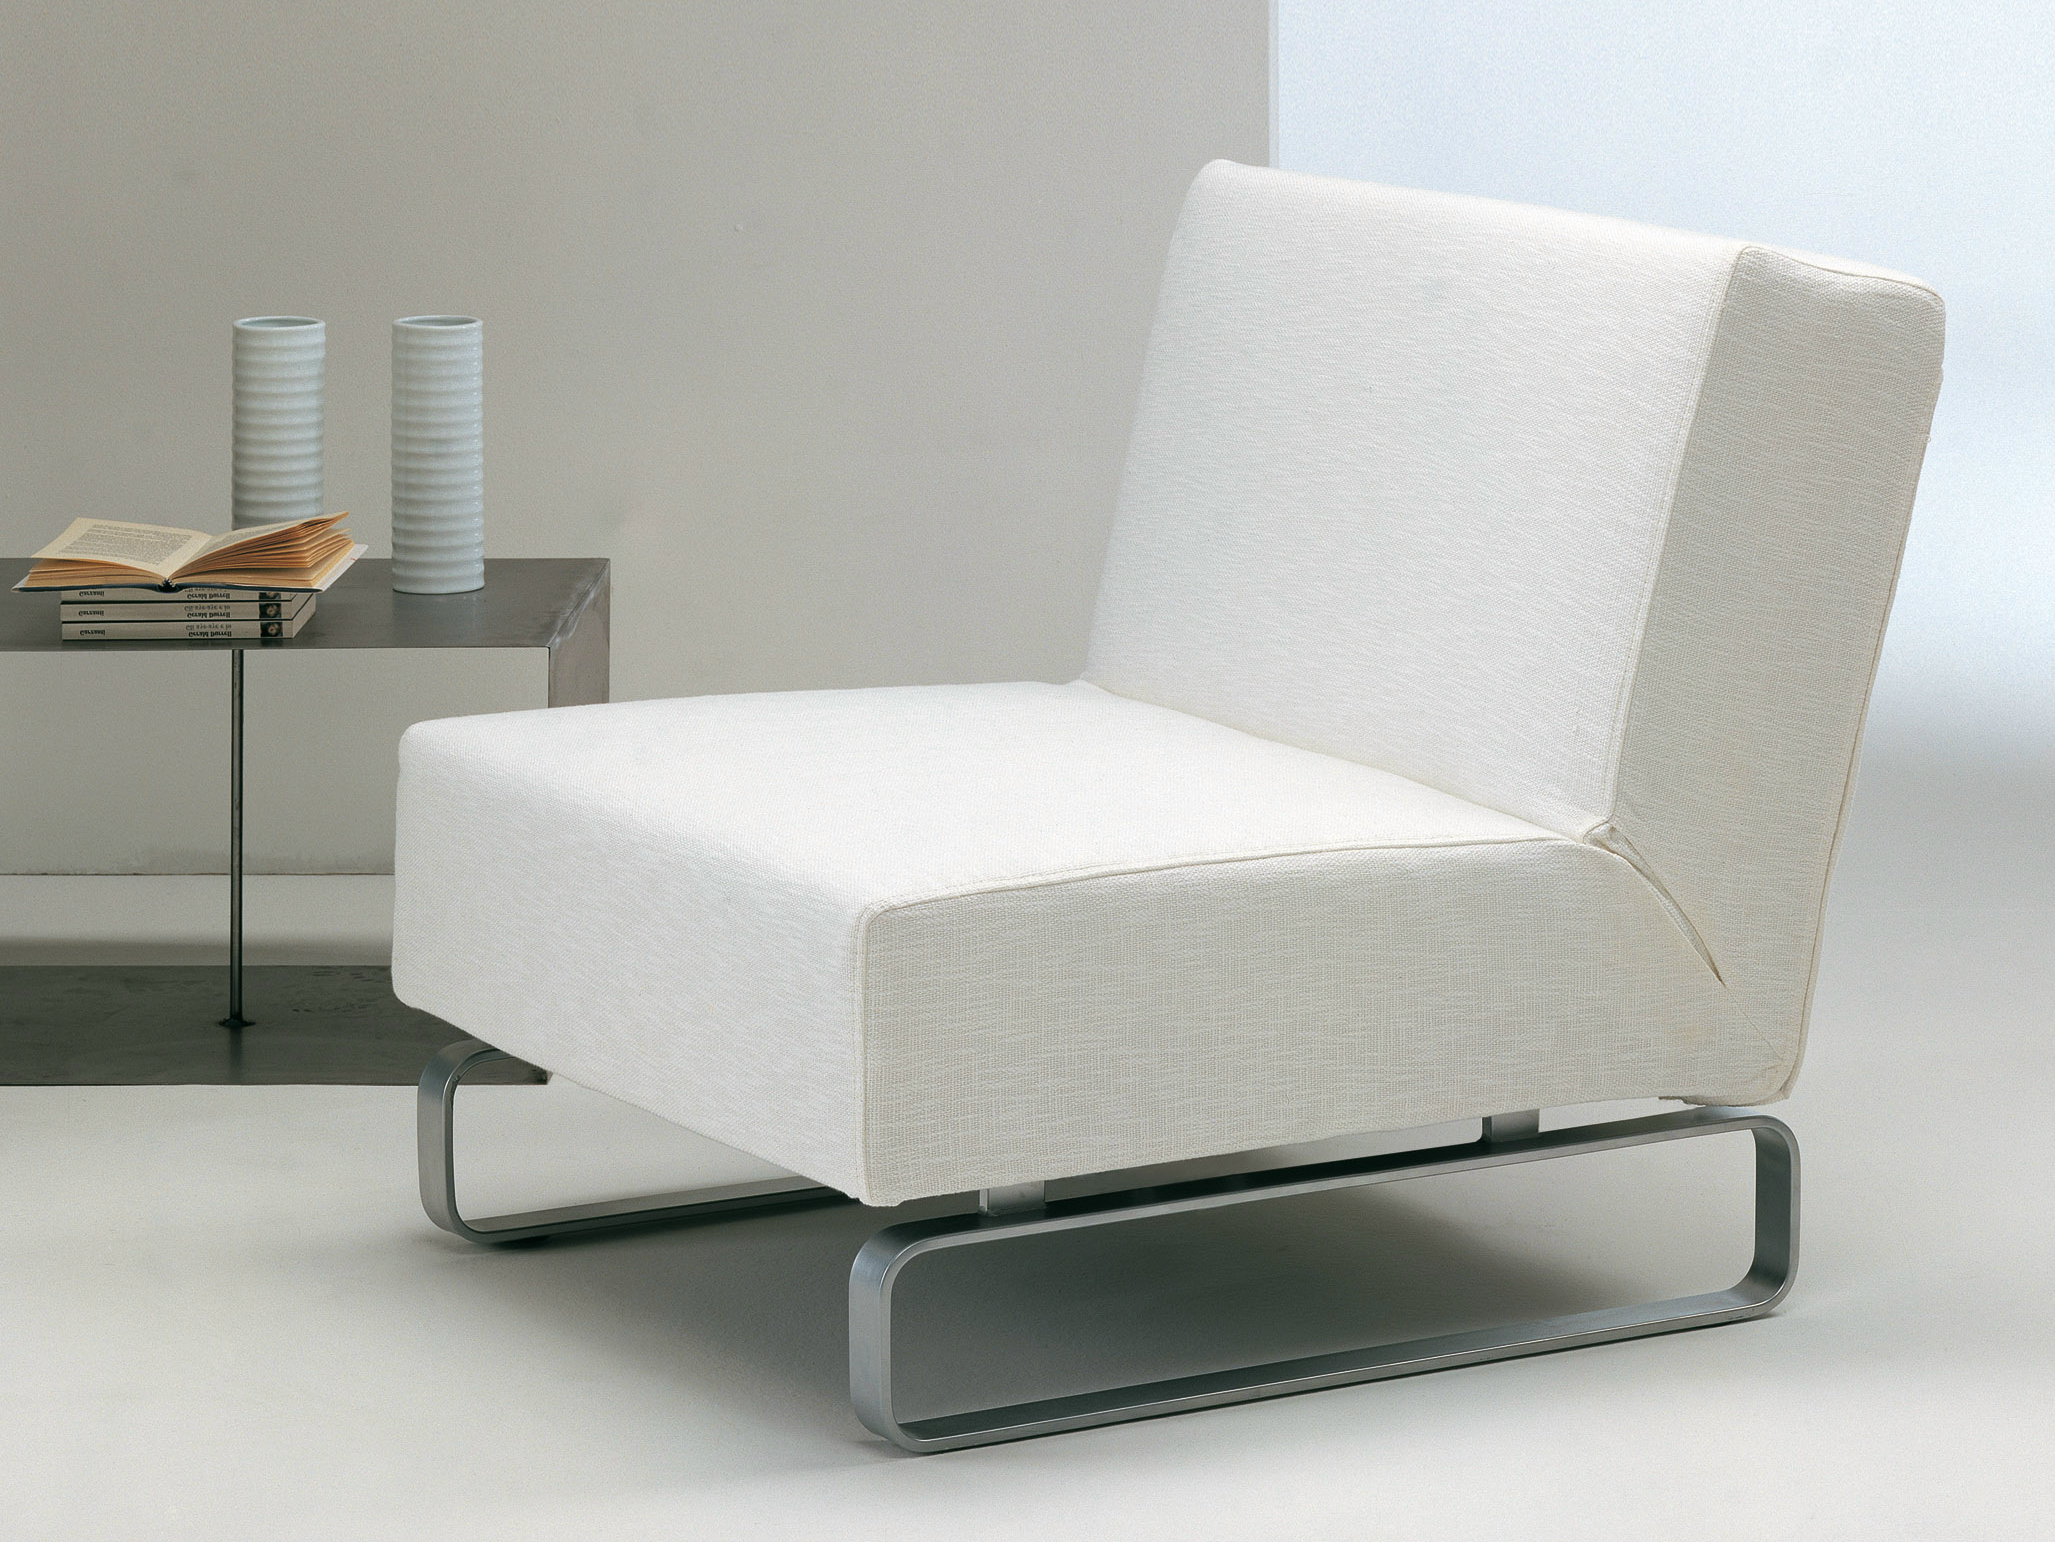 Schlaffsessel Queen Schlafsessel By Bodema Design C And D